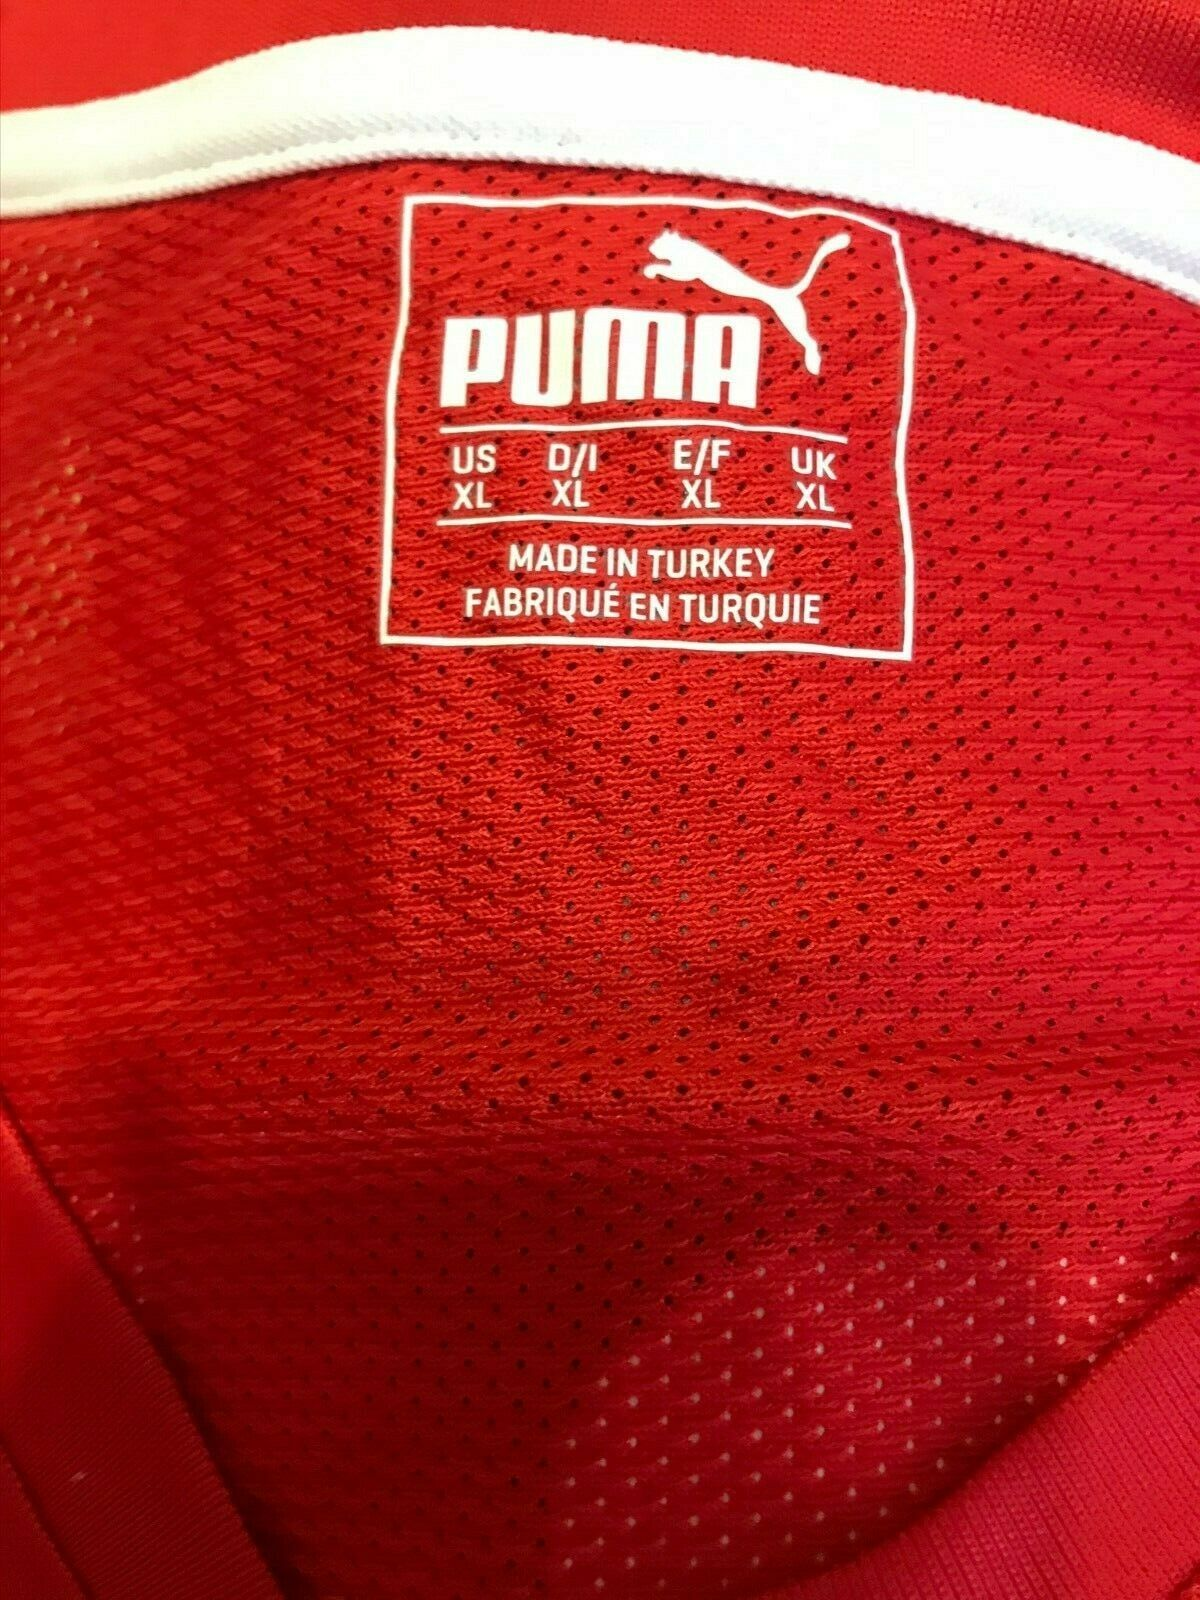 Danish Handball Federation #21 Size XL Puma 702070 jersey